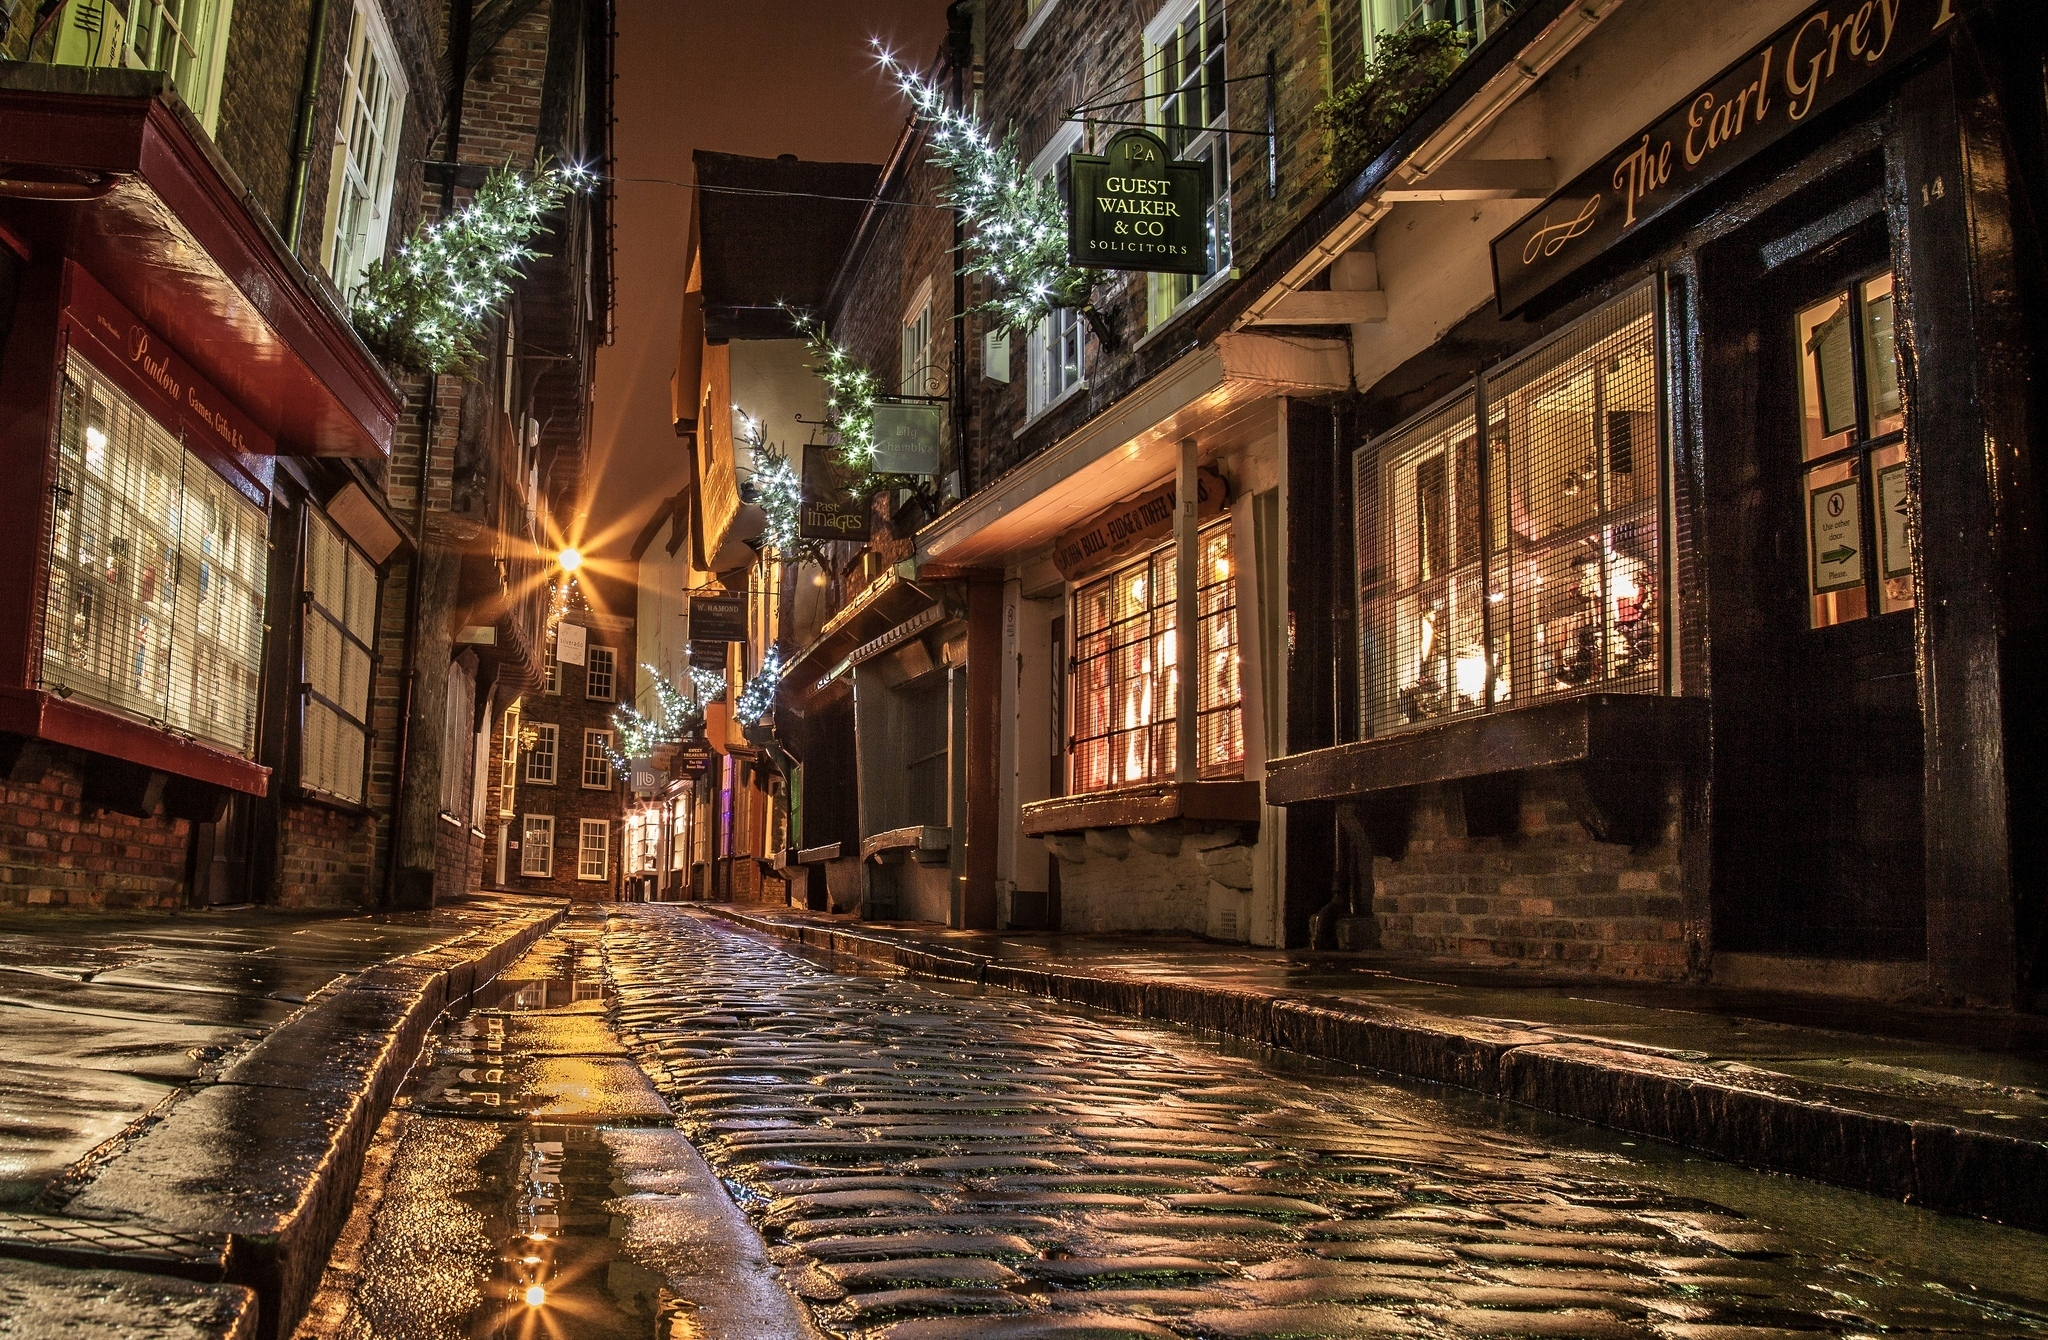 Christmas-England-Evening-Houses-lights-New-year-night-Paving-Road-Shopping-Street-Windo-wallpaper-wpc58023